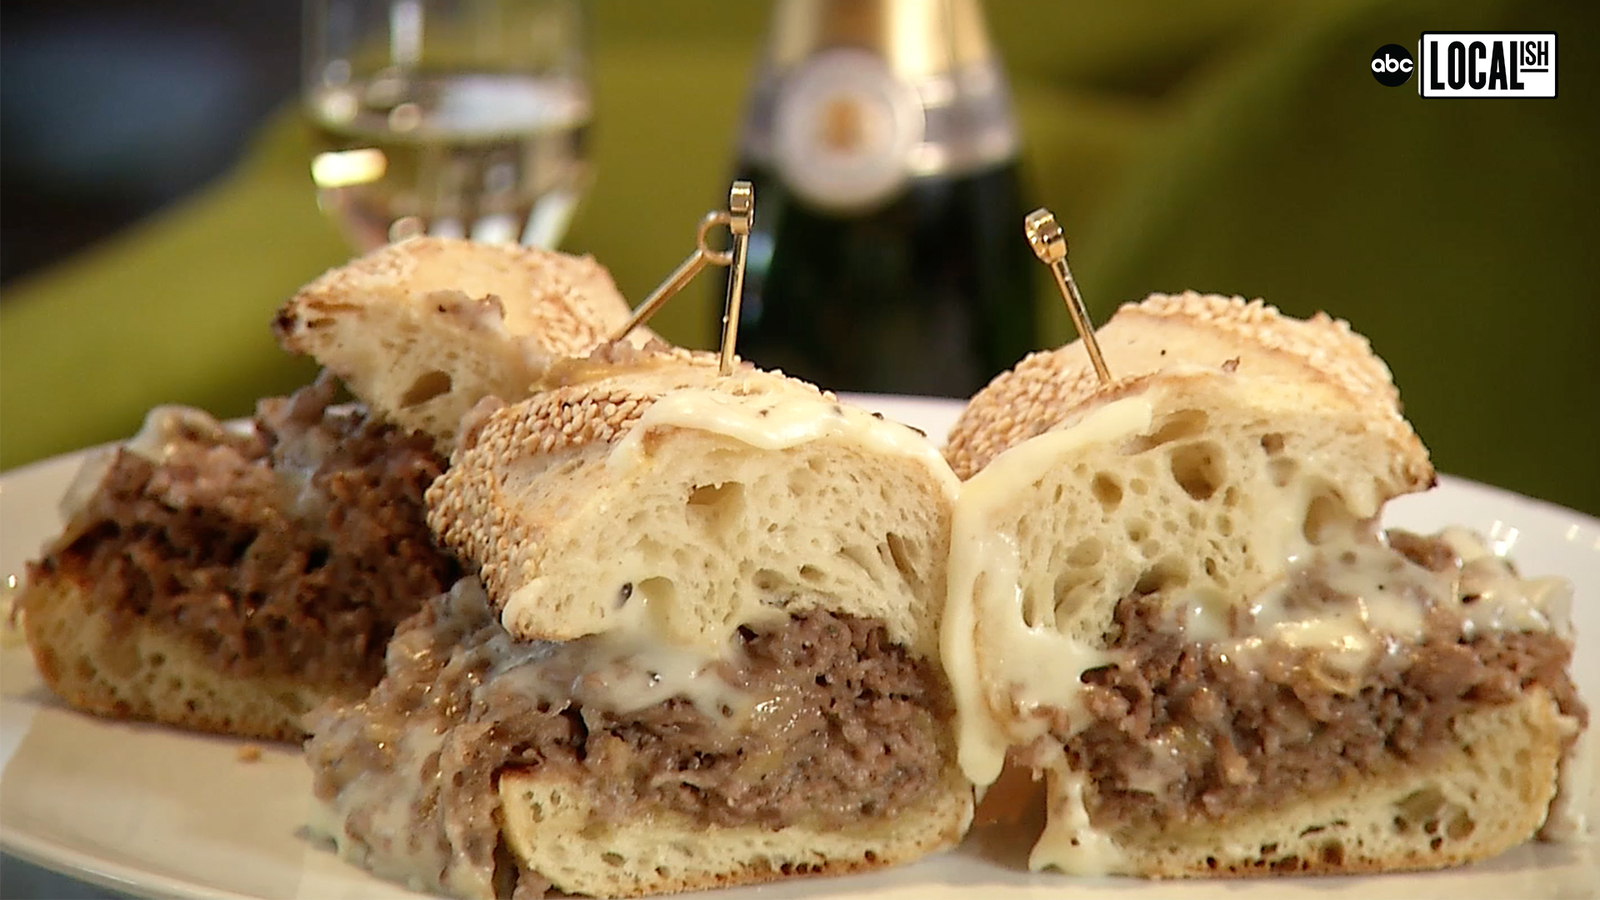 Barclay Prime is home to the world's most expensive cheesesteak